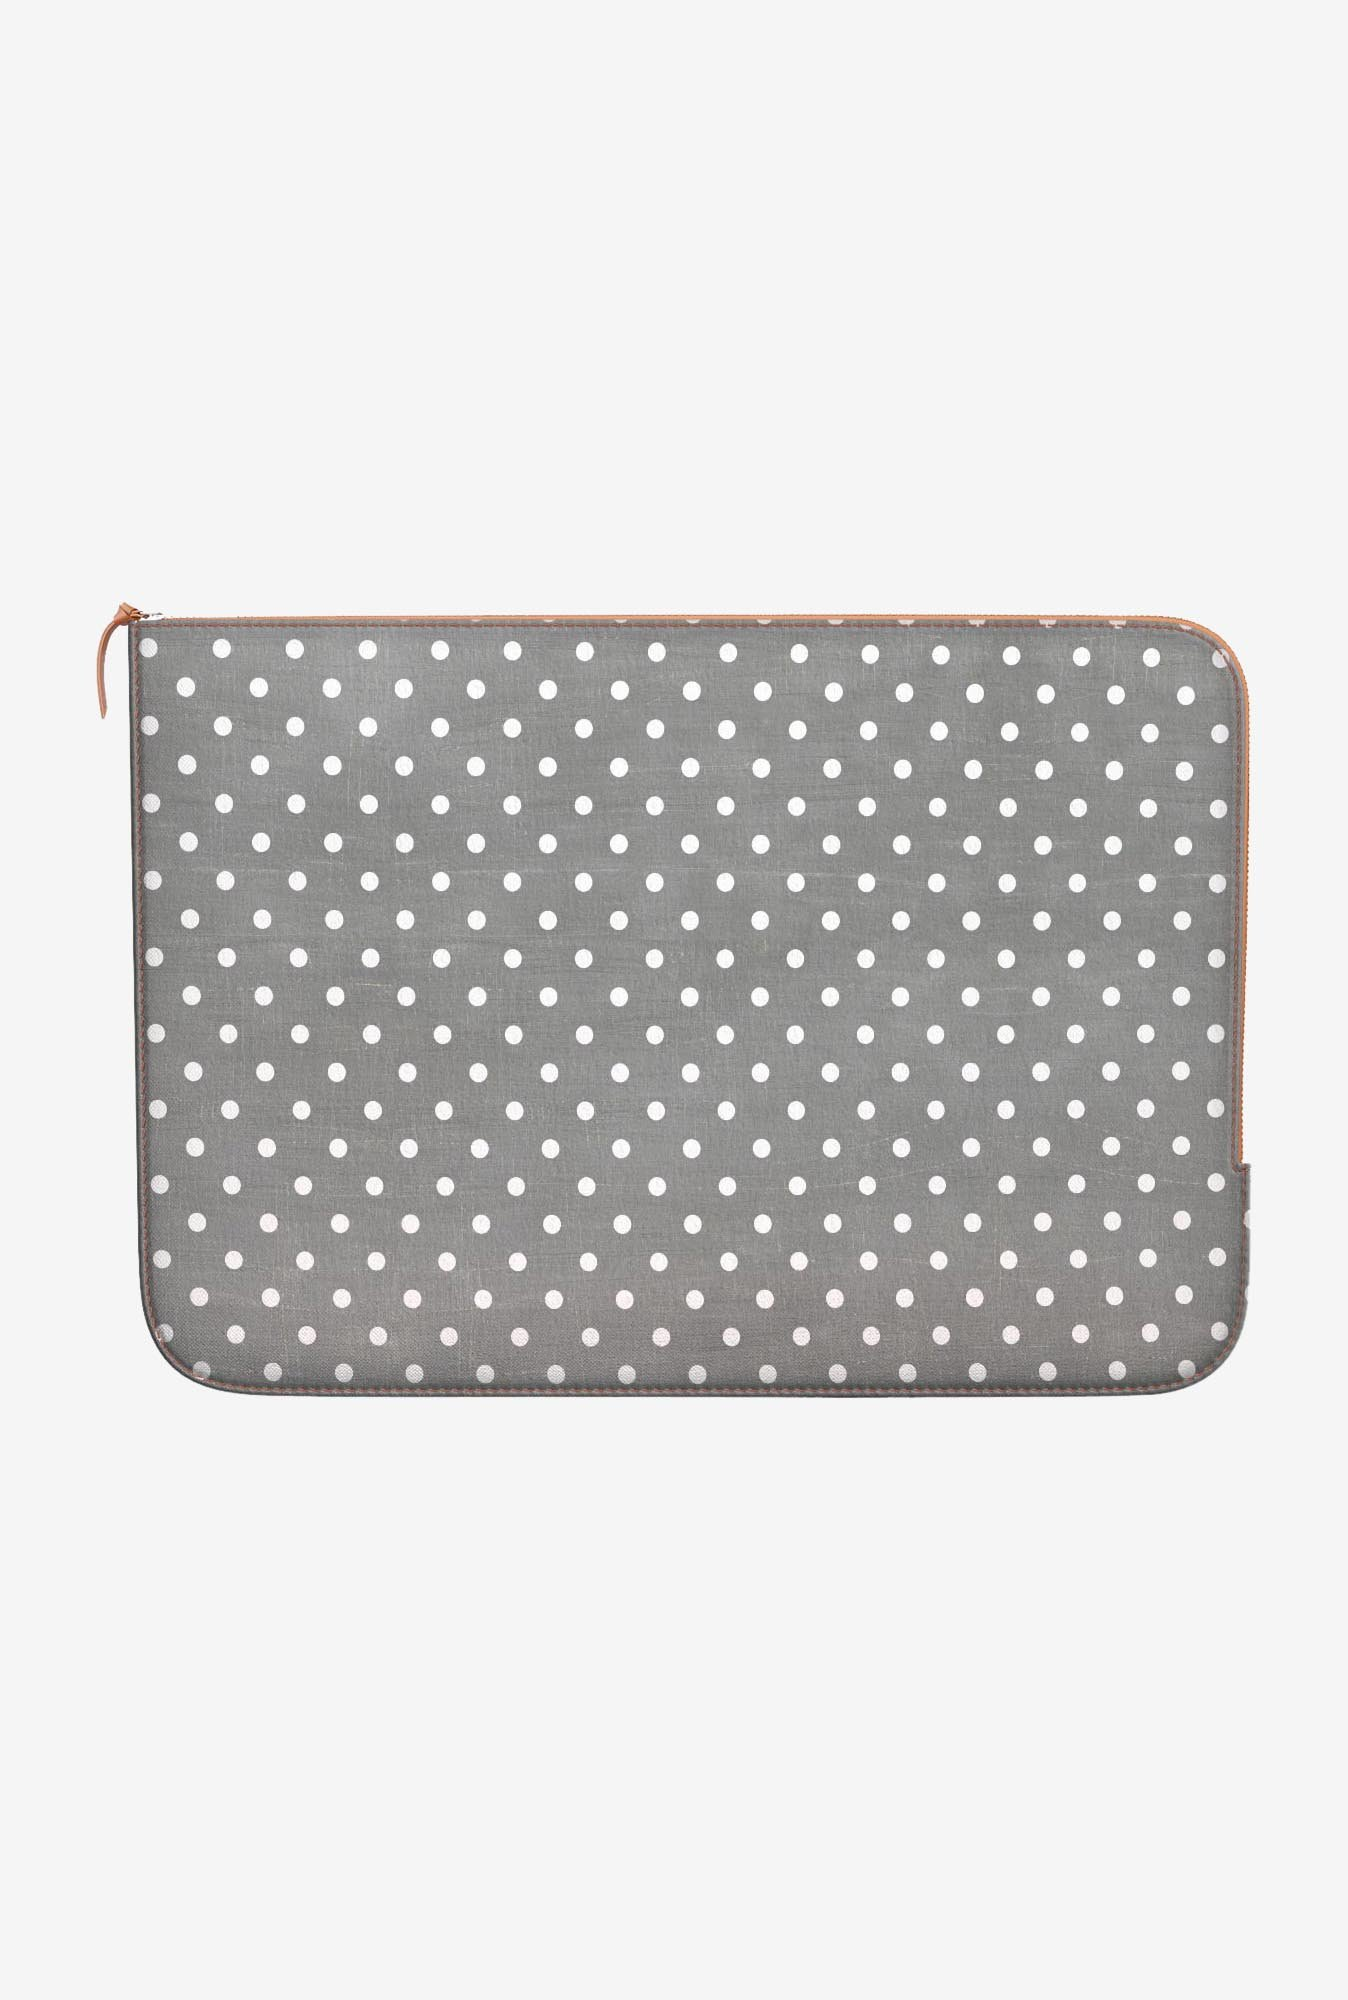 DailyObjects Swiss Dots MacBook 12 Zippered Sleeve